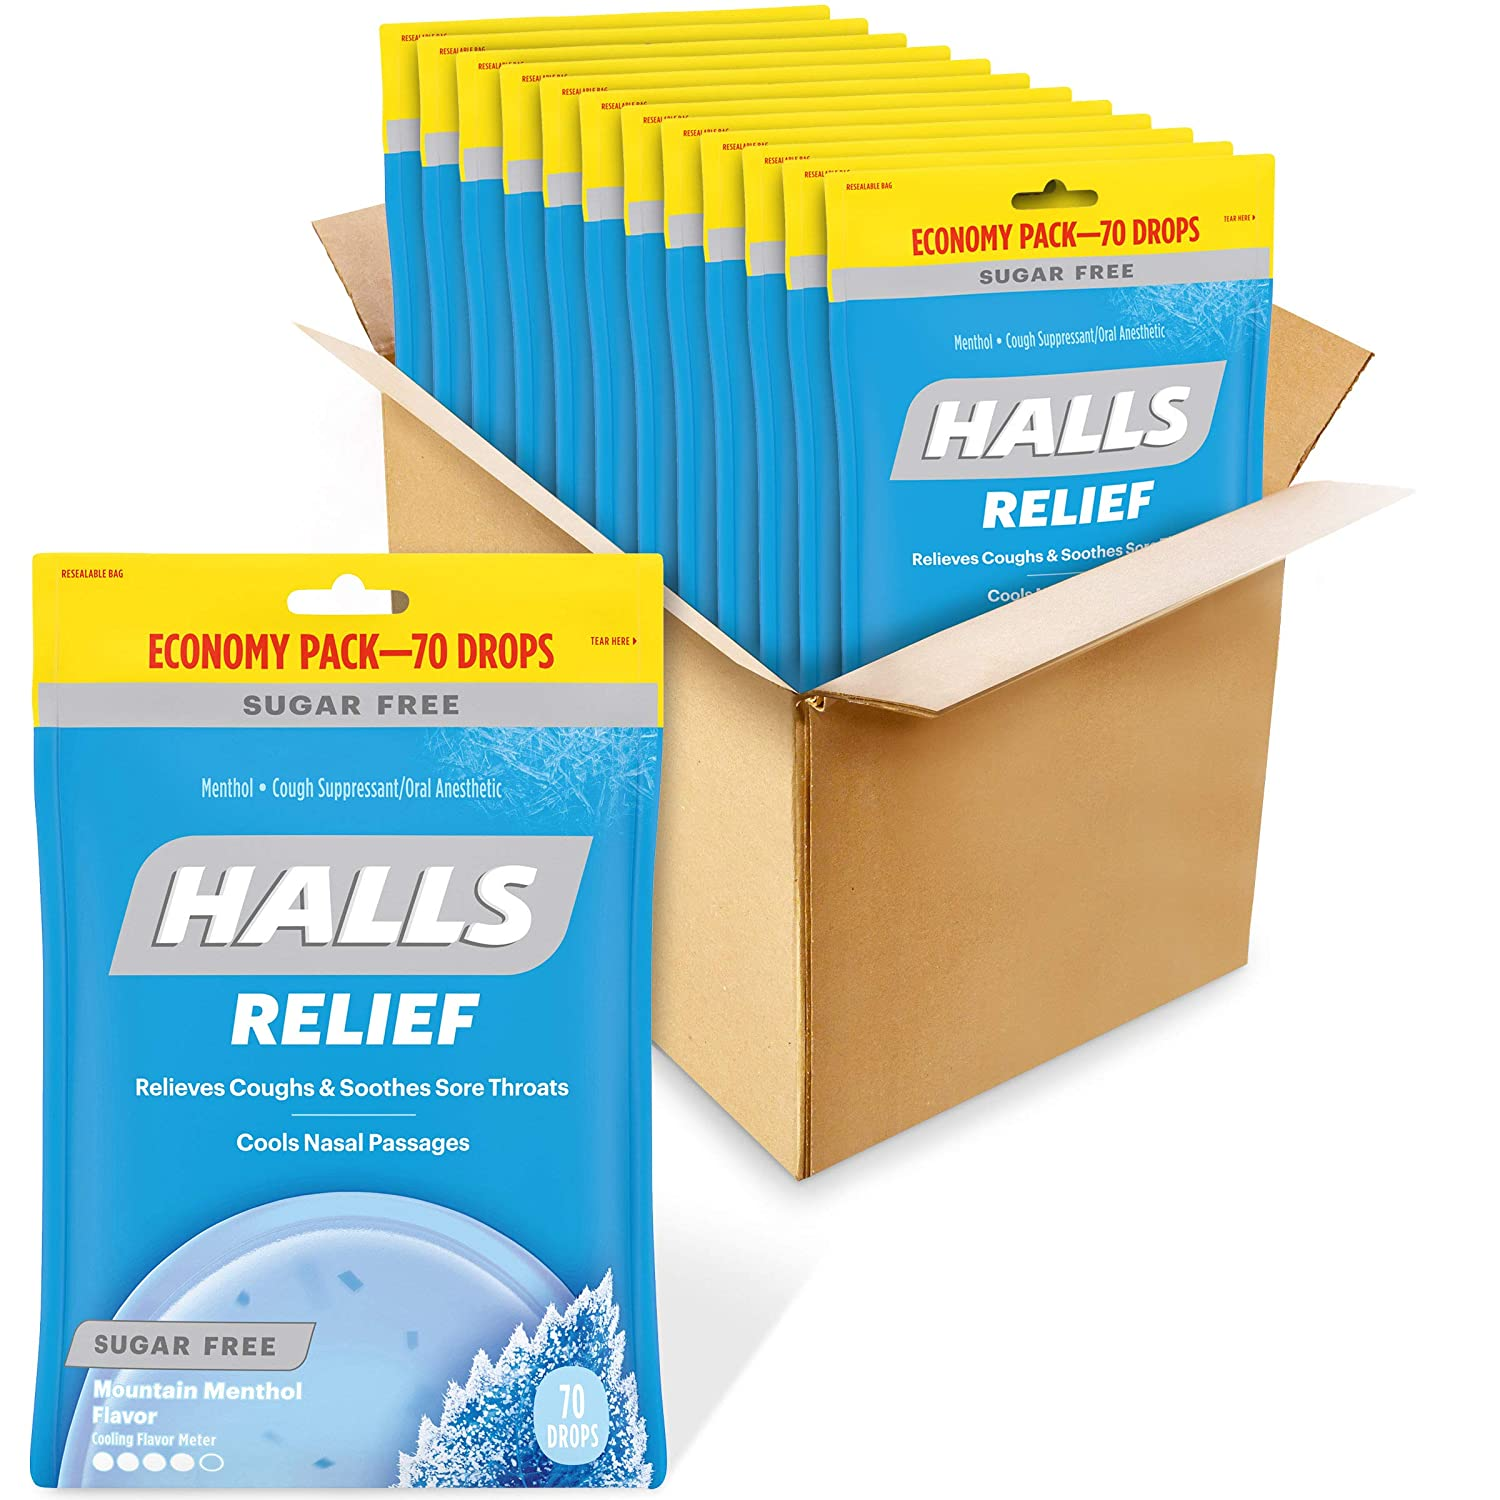 HALLS Relief Mountain Menthol Sugar Free Cough Drops, Economy Pack, 12 Bags of 70 Drops (840 Total Drops)